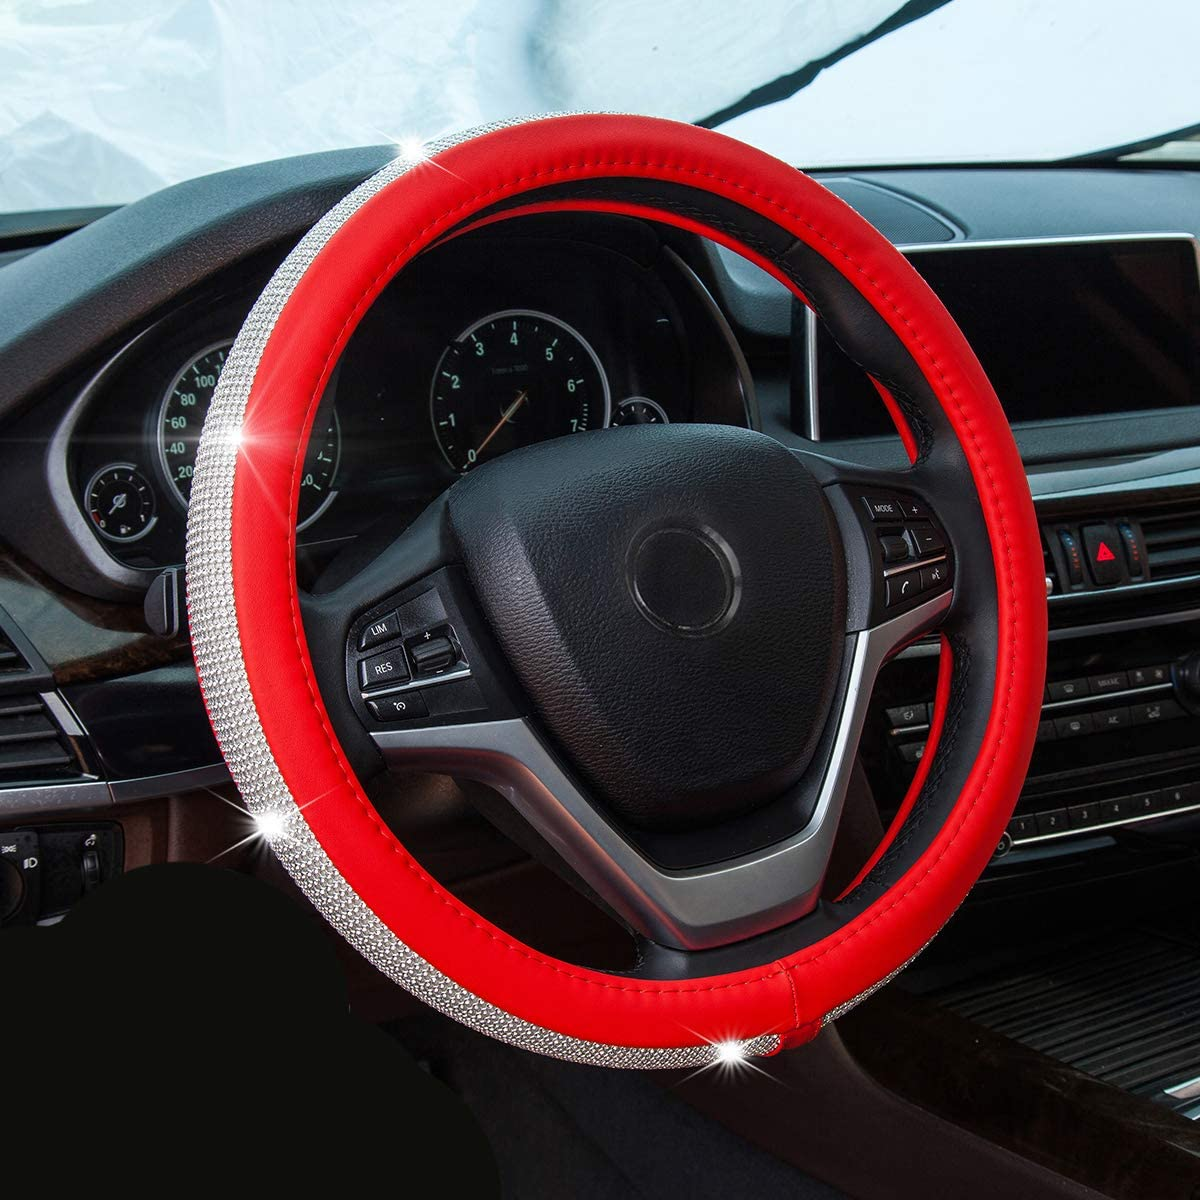 ChuLian New Diamond Leather Steering Wheel Cover $17.99 Coupon